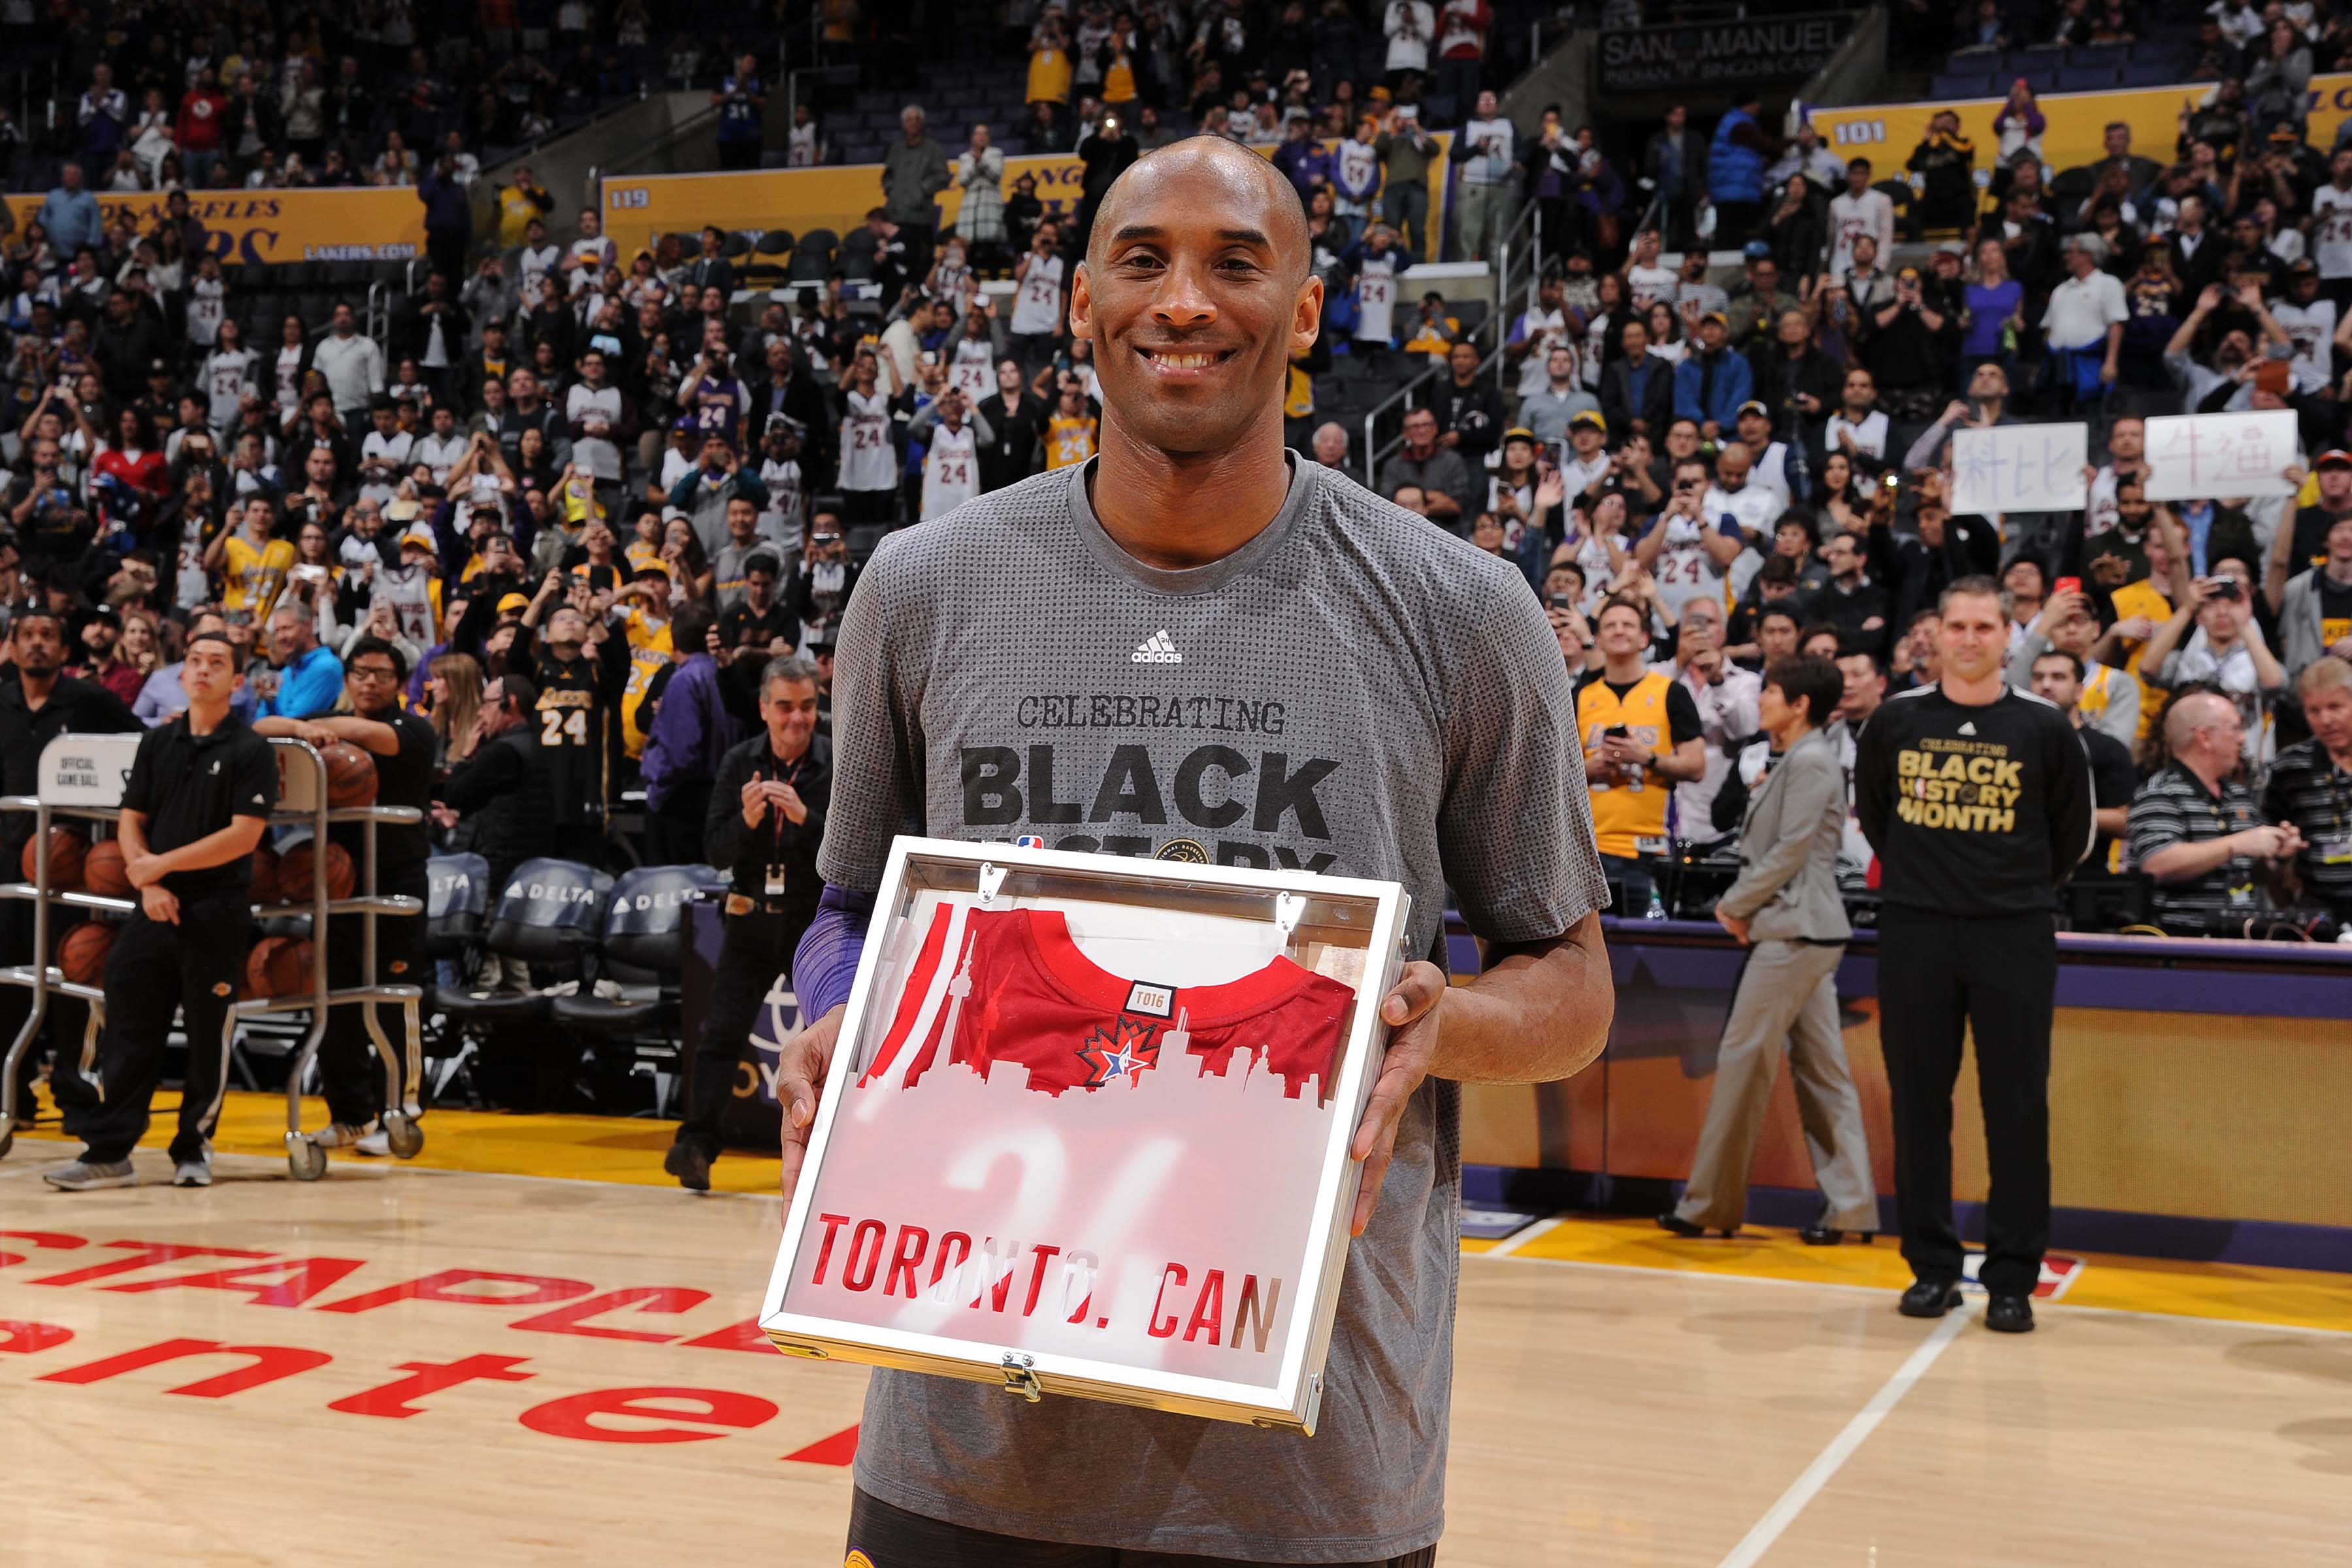 LOS ANGELES, CA - FEBRUARY 2:  Kobe Bryant #24 of the Los Angeles Lakers poses for a photo with his 2016 NBA All-Star Jersey before the game against the Minnesota Timberwolves on February 2, 2016 at STAPLES Center in Los Angeles, California. NOTE TO USER: User expressly acknowledges and agrees that, by downloading and/or using this Photograph, user is consenting to the terms and conditions of the Getty Images License Agreement. Mandatory Copyright Notice: Copyright 2016 NBAE (Photo by Andrew D. Bernstein/NBAE via Getty Images)